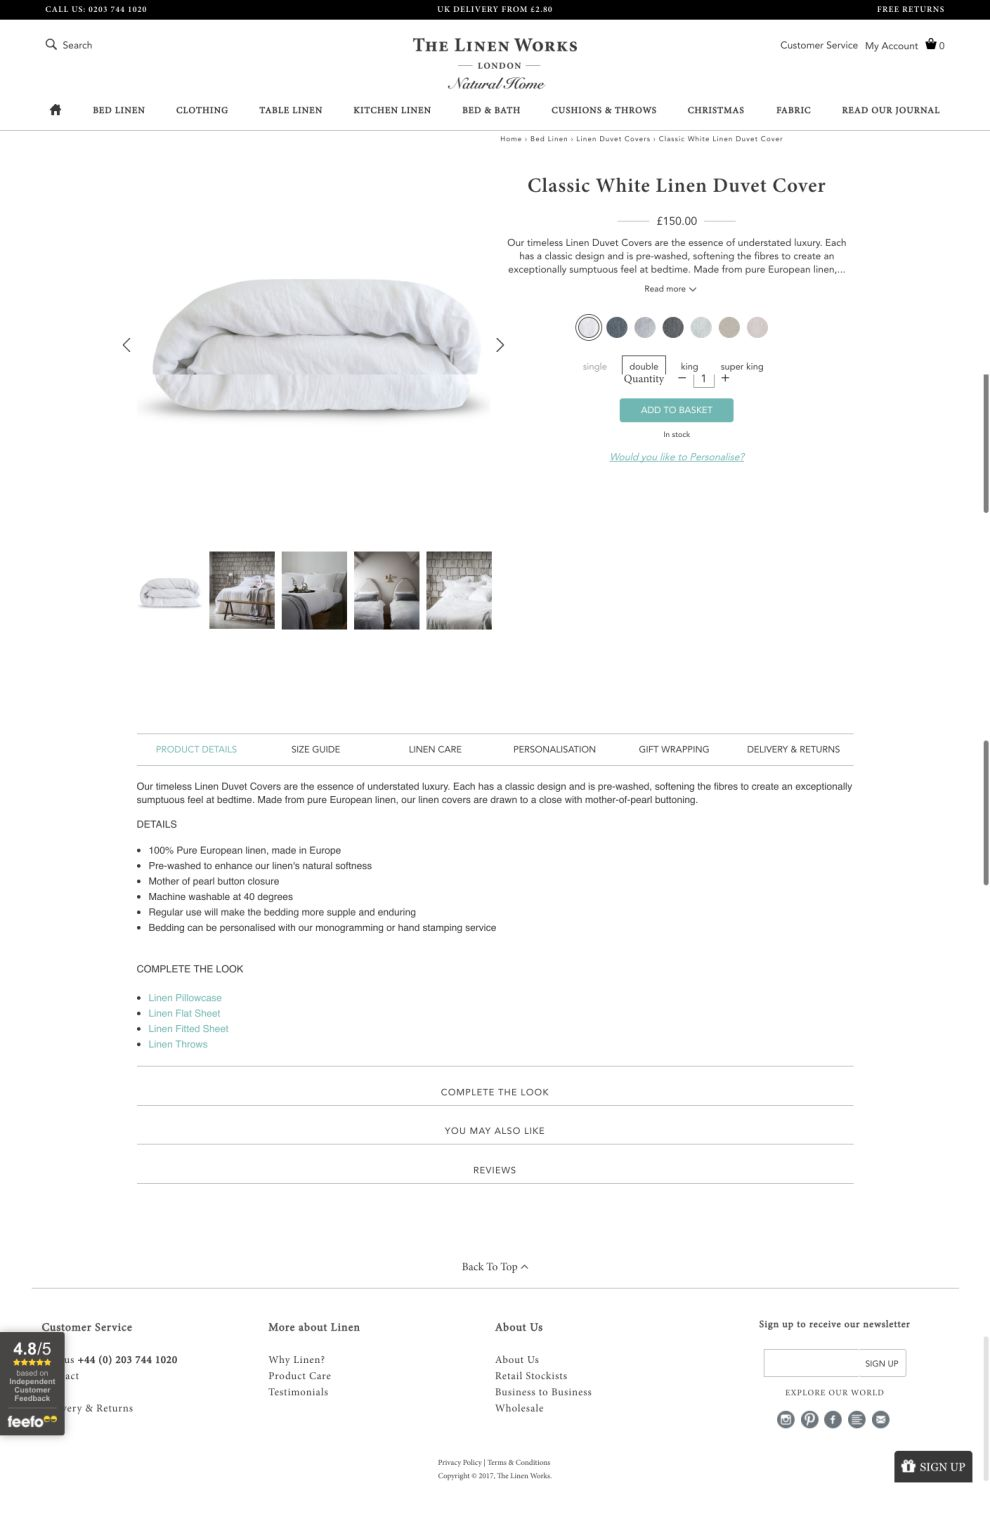 The Linen Works Corporate Product Page